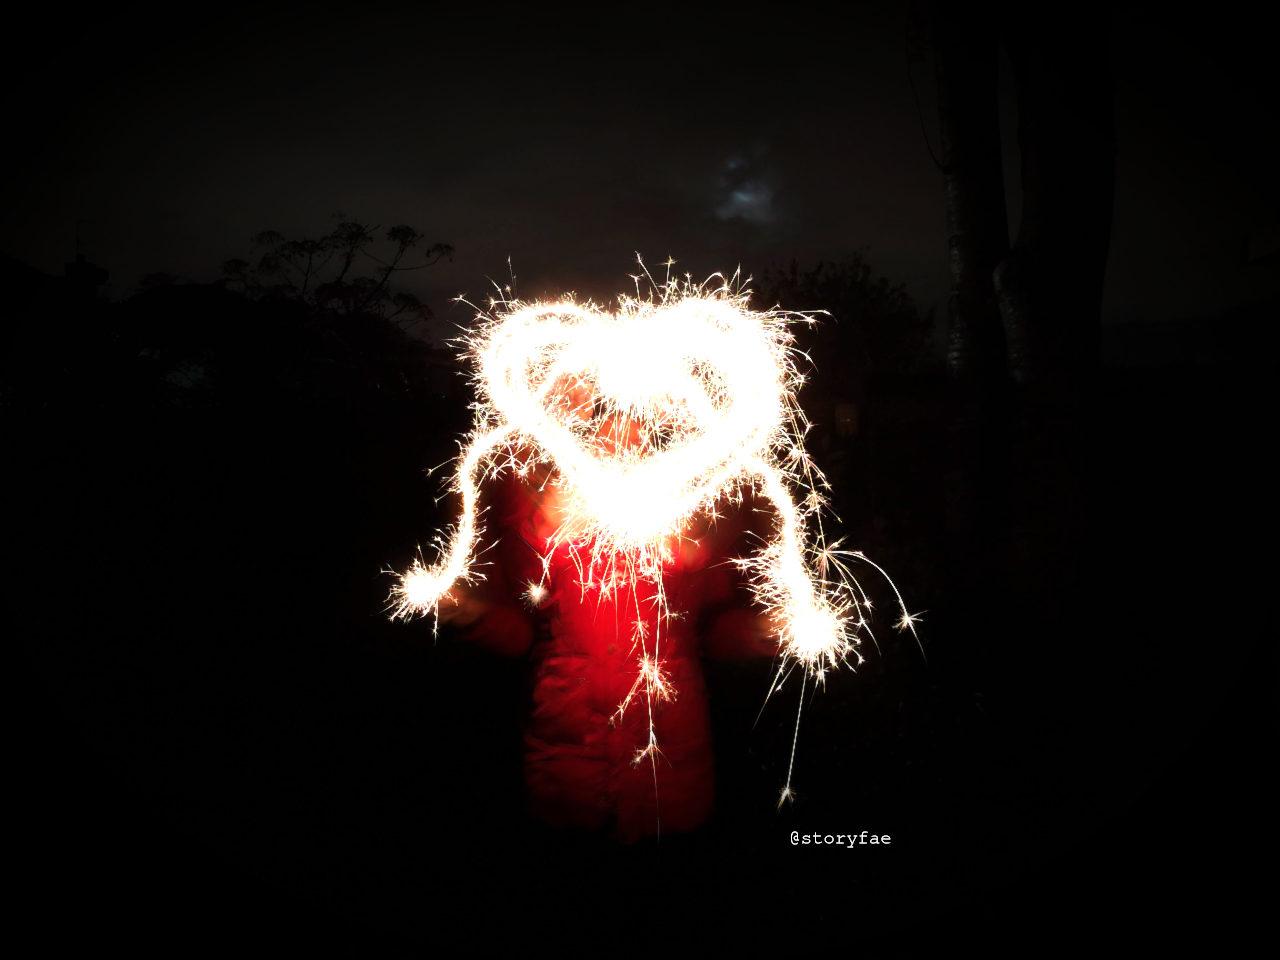 lightpainting in the dark with sparklers making a heart